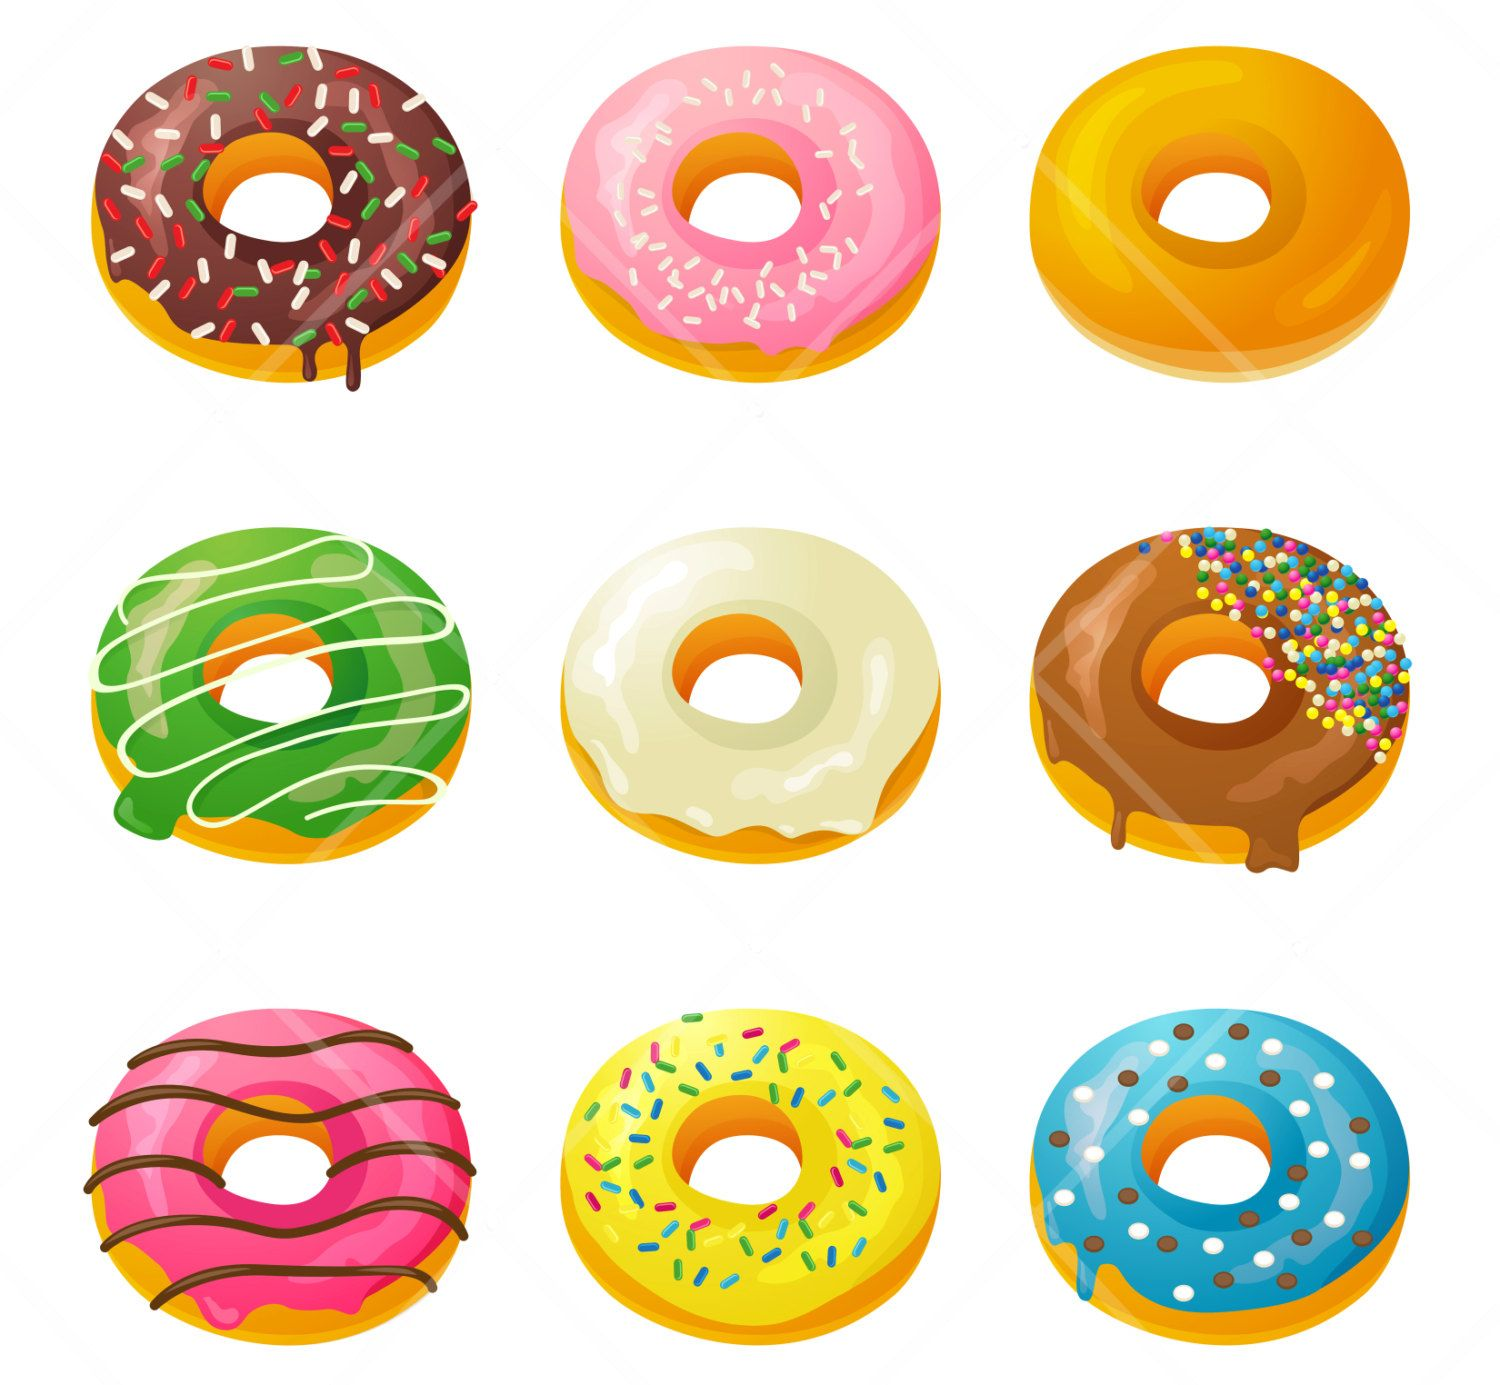 4 clipart donuts. Box of cakes food